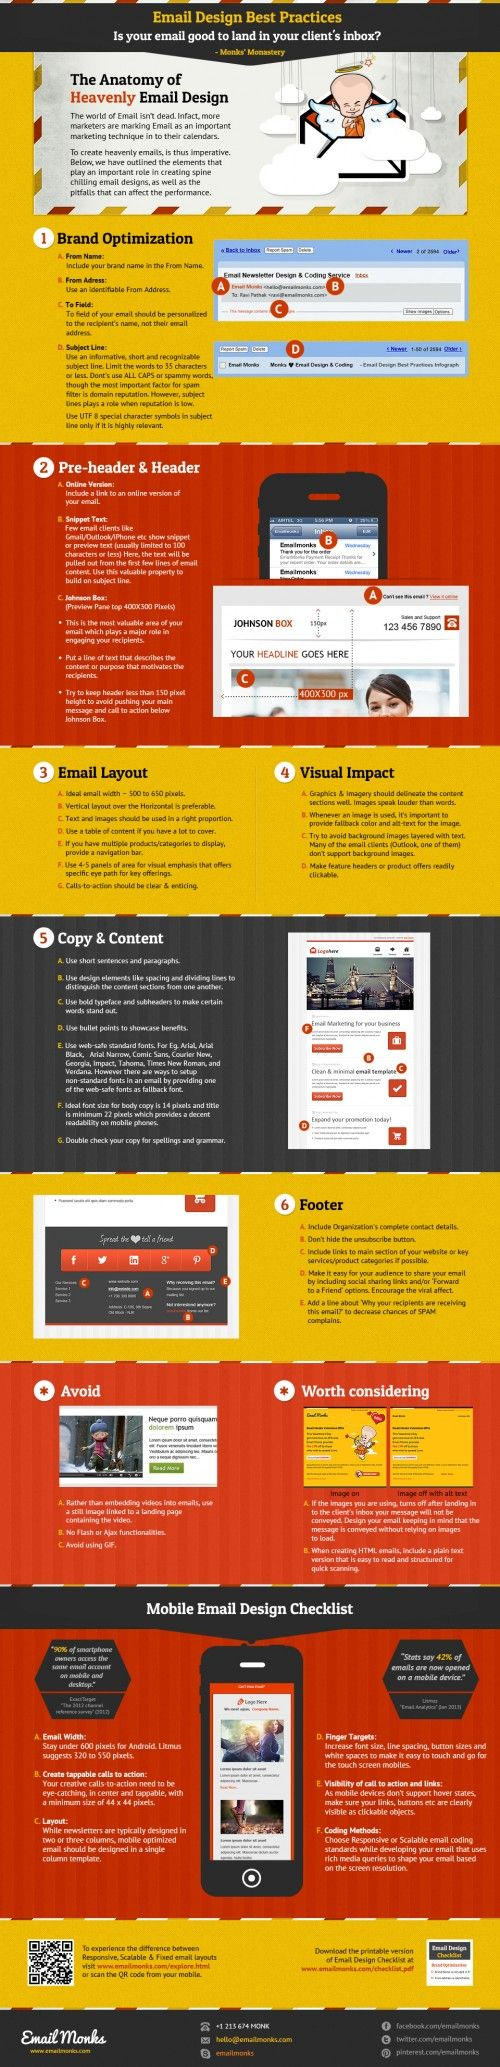 Email Newsletter Design Best practices Infographic @Email Monks